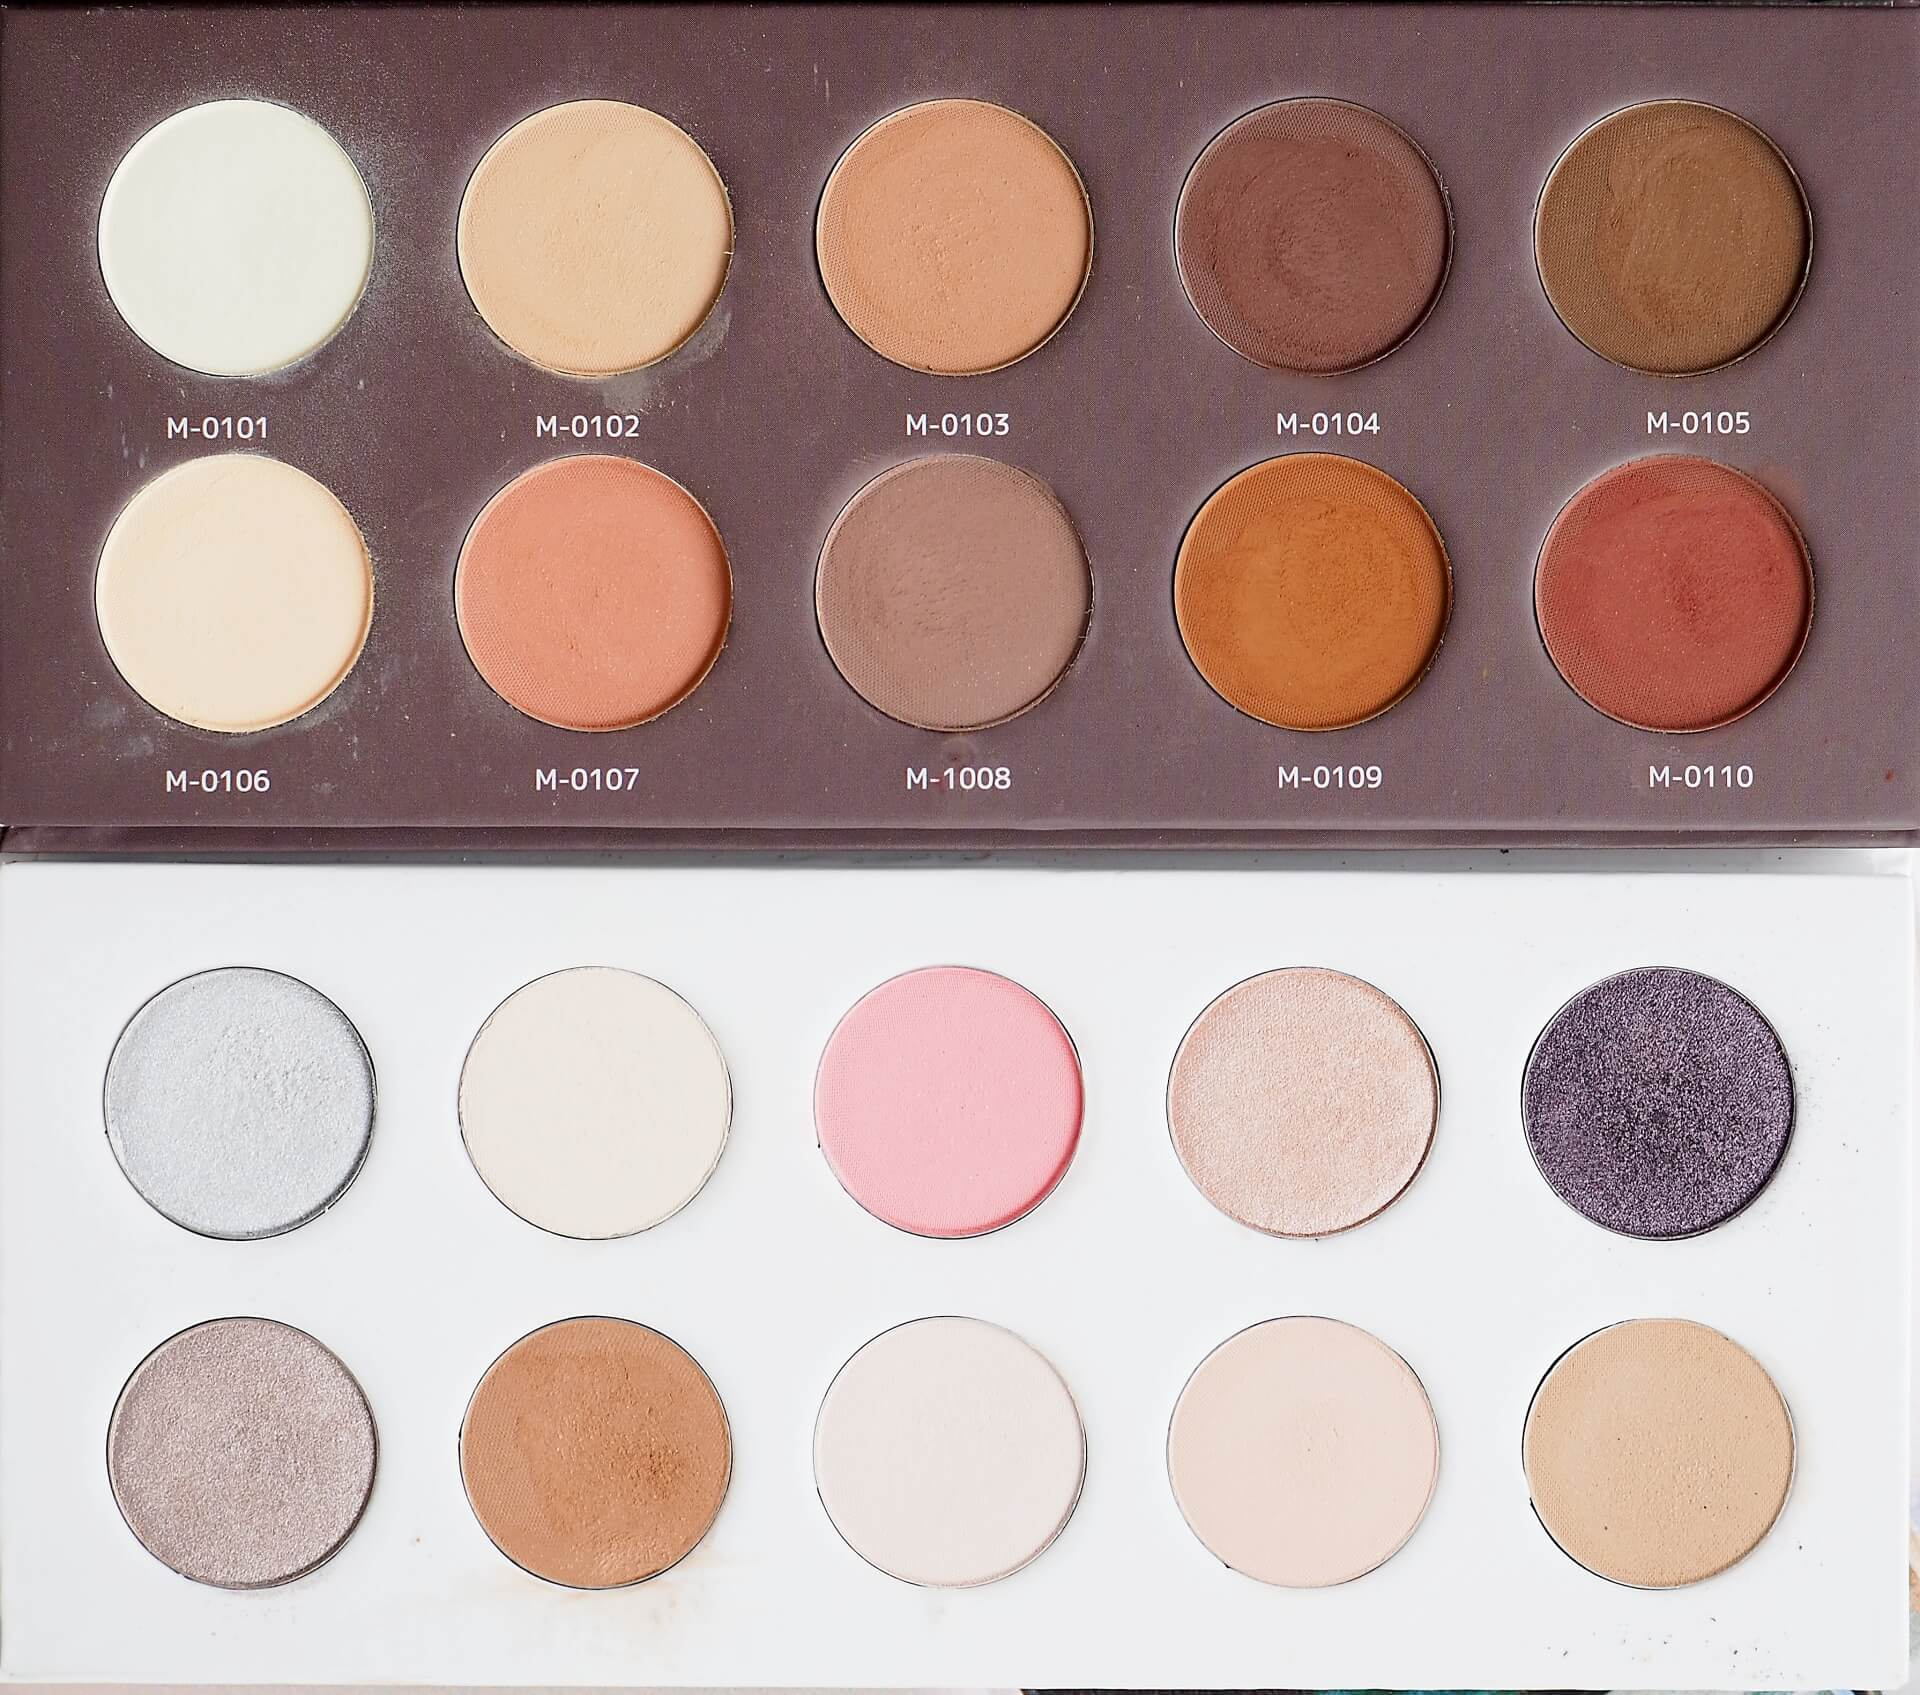 AFFECT NATURALLY MATTE I NUDE BY DAY